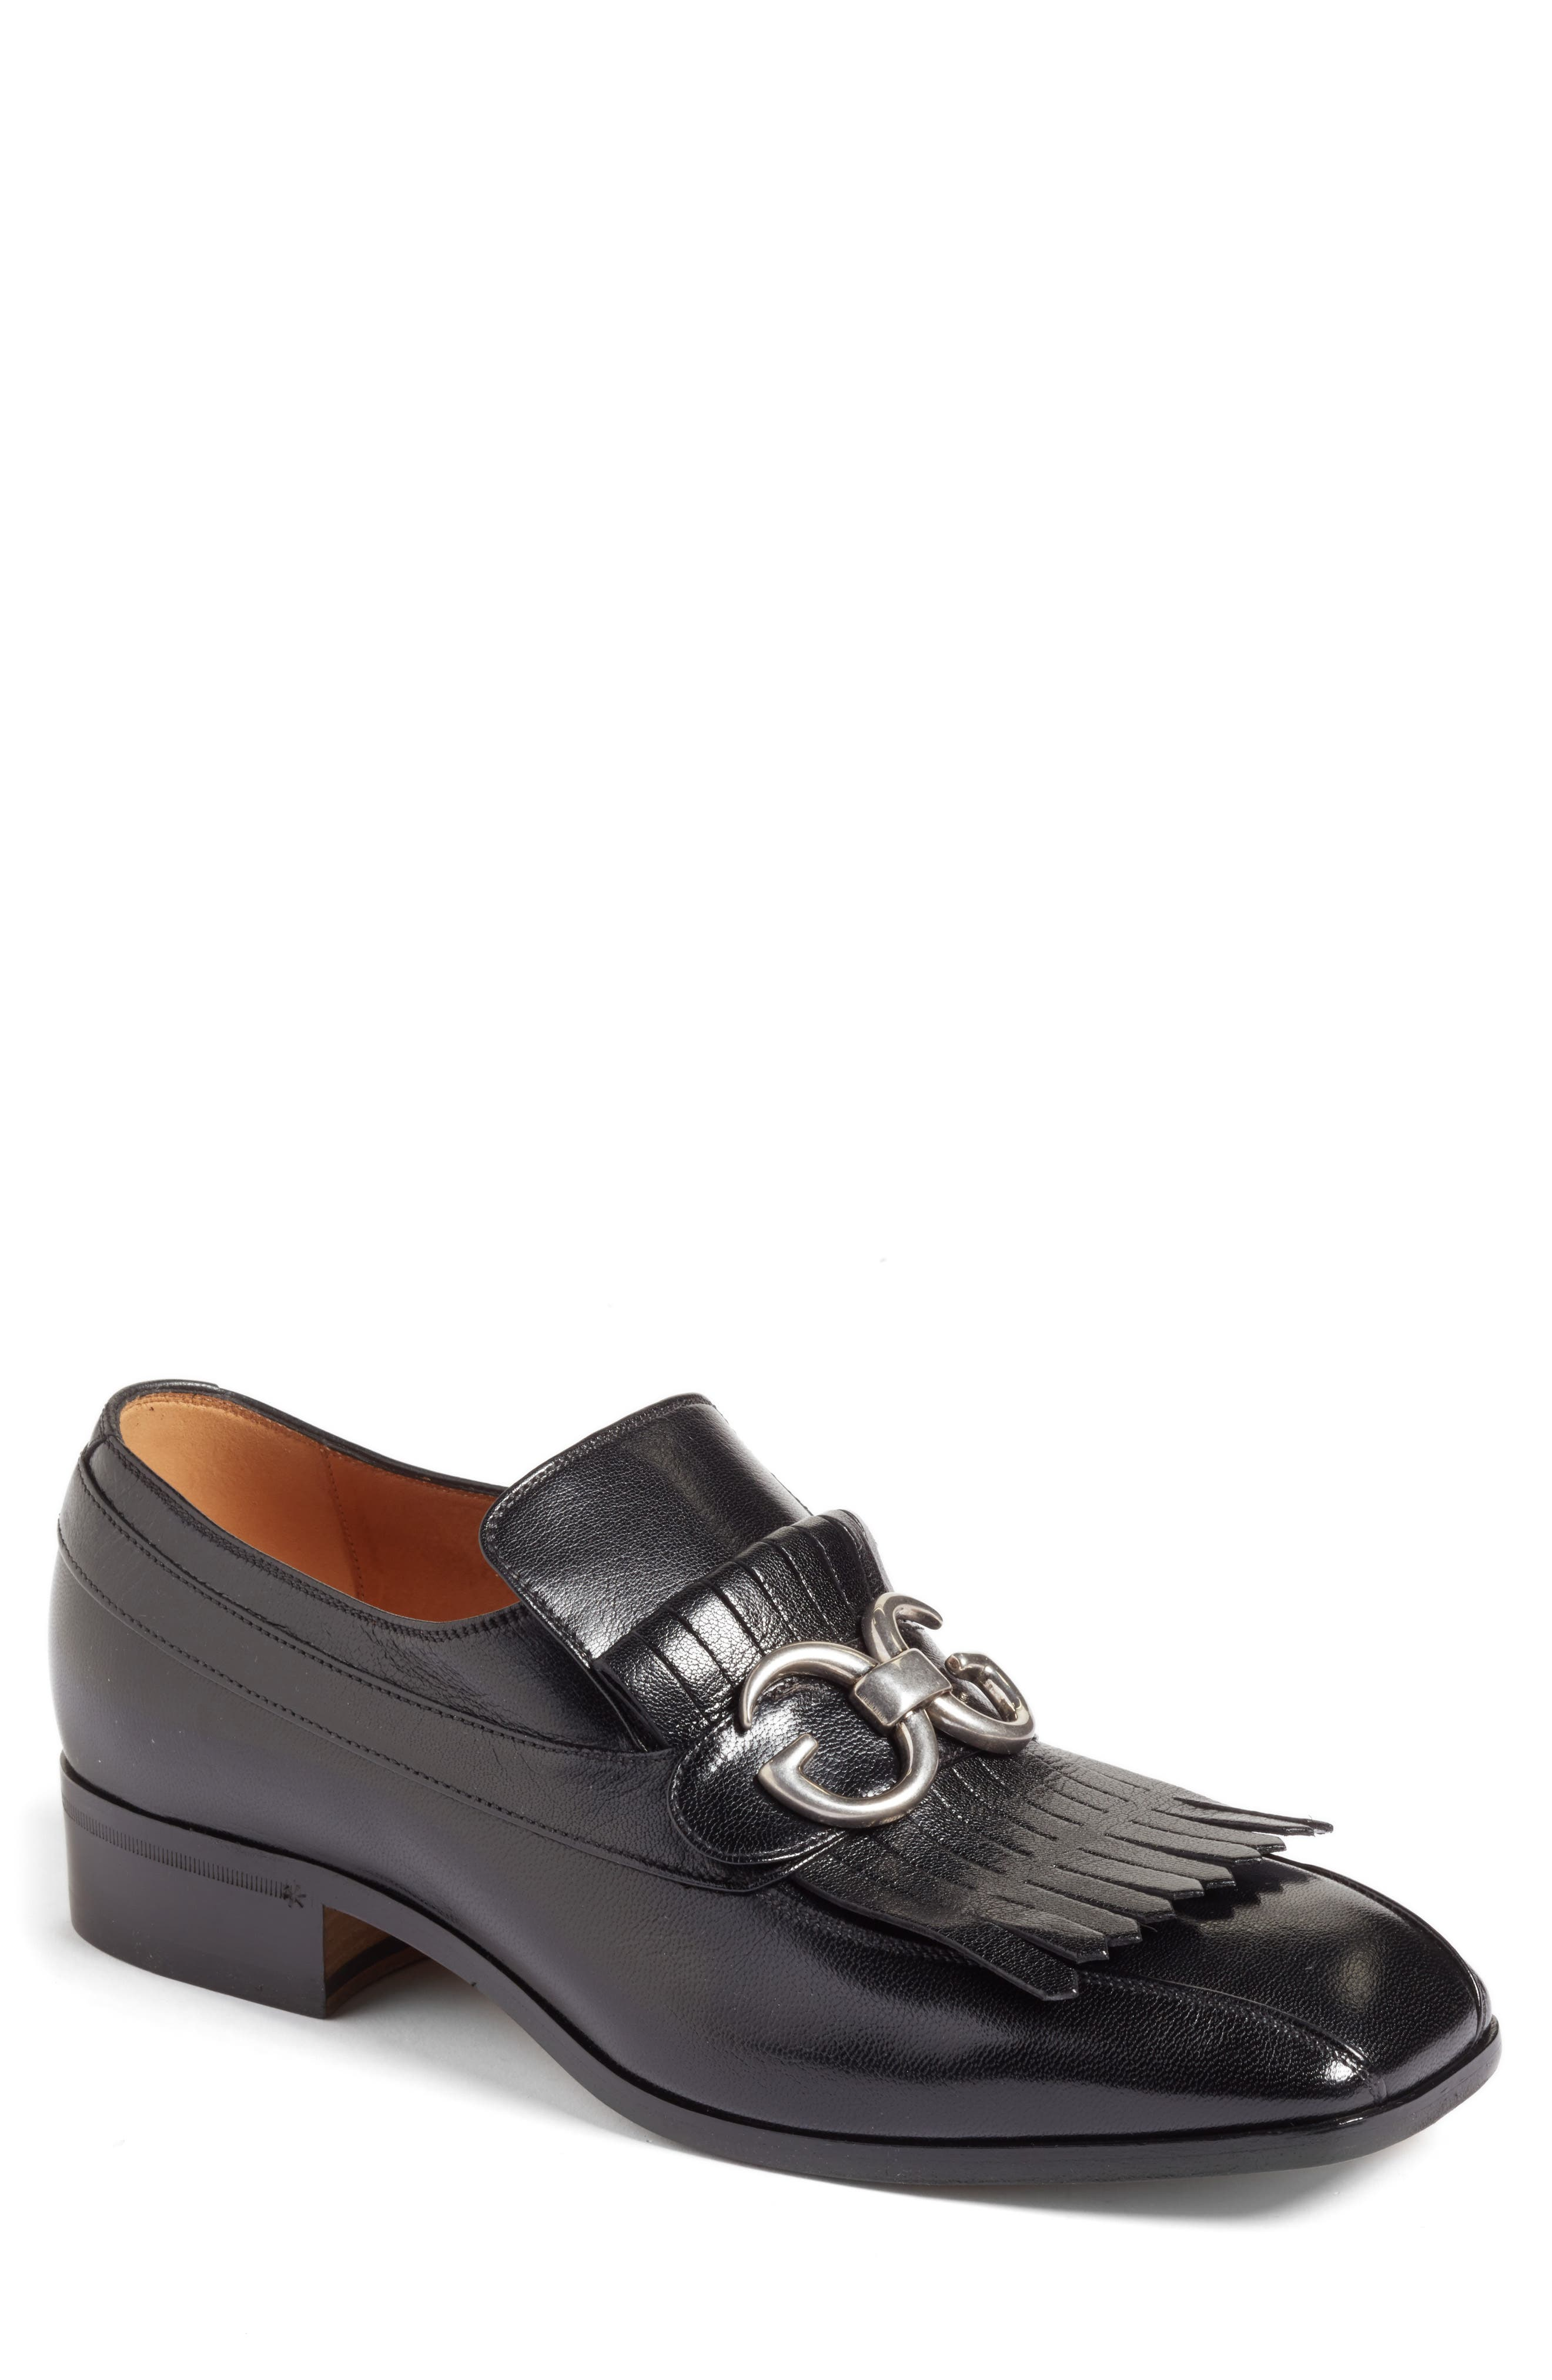 Alternate Image 1 Selected - Gucci Novel Marmont Kiltie Loafer (Men)